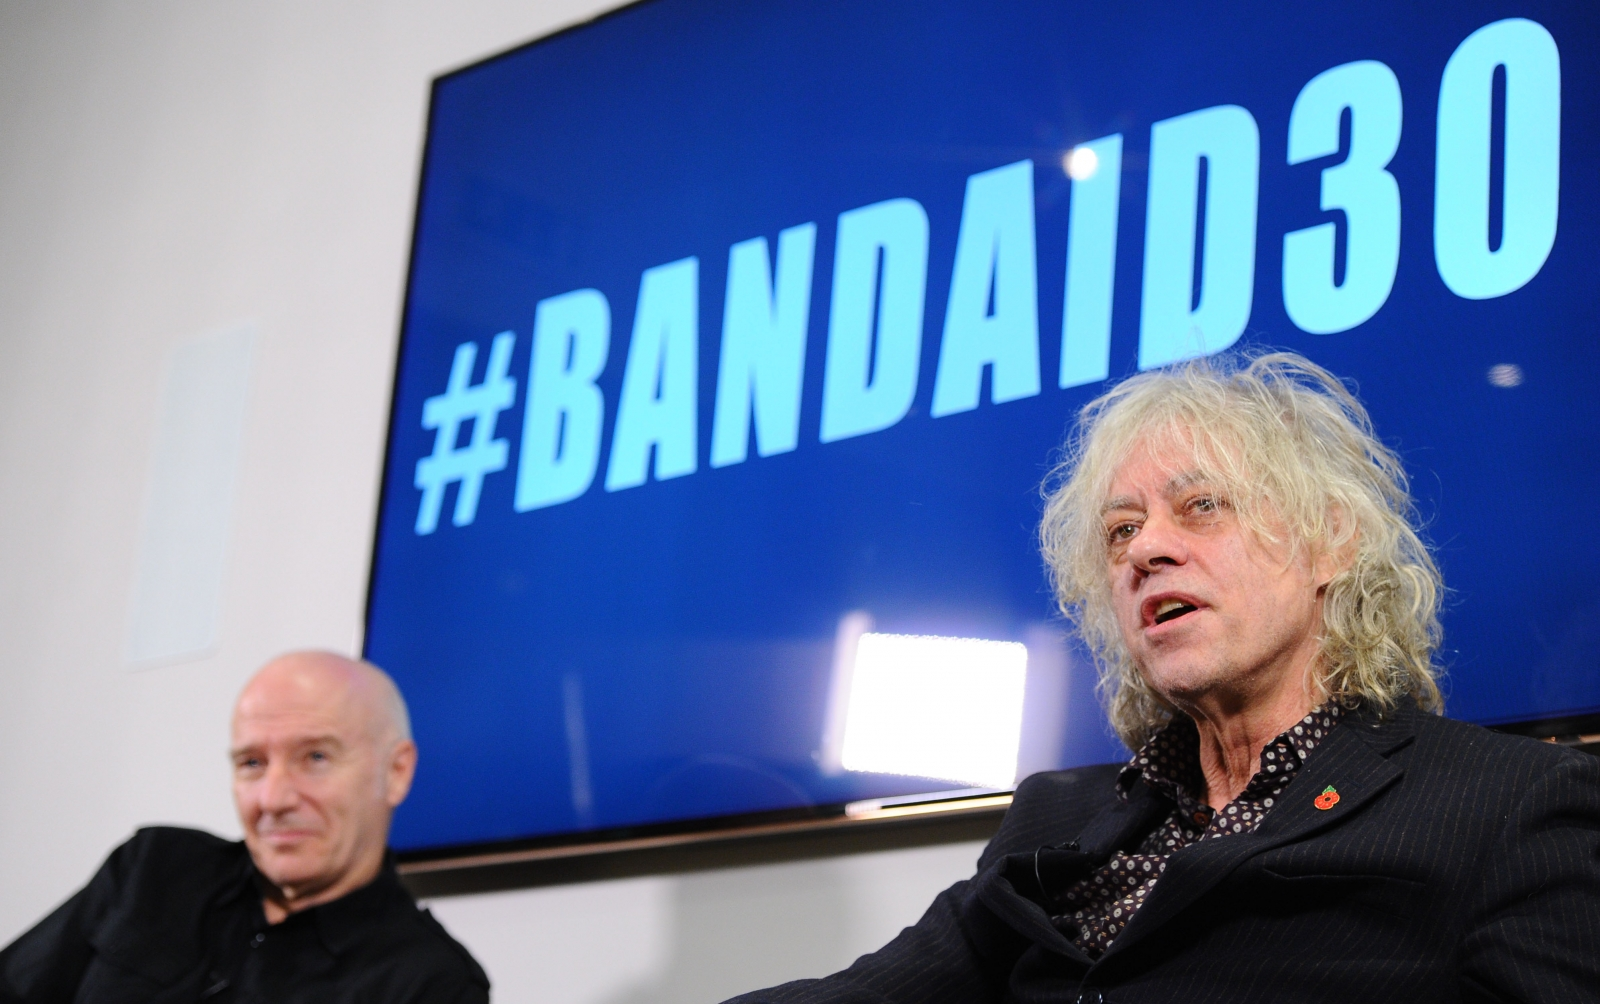 Midge Ure and Sir Bob Geldoff discuss Band Aid 30 at a press conference this week. (Getty)